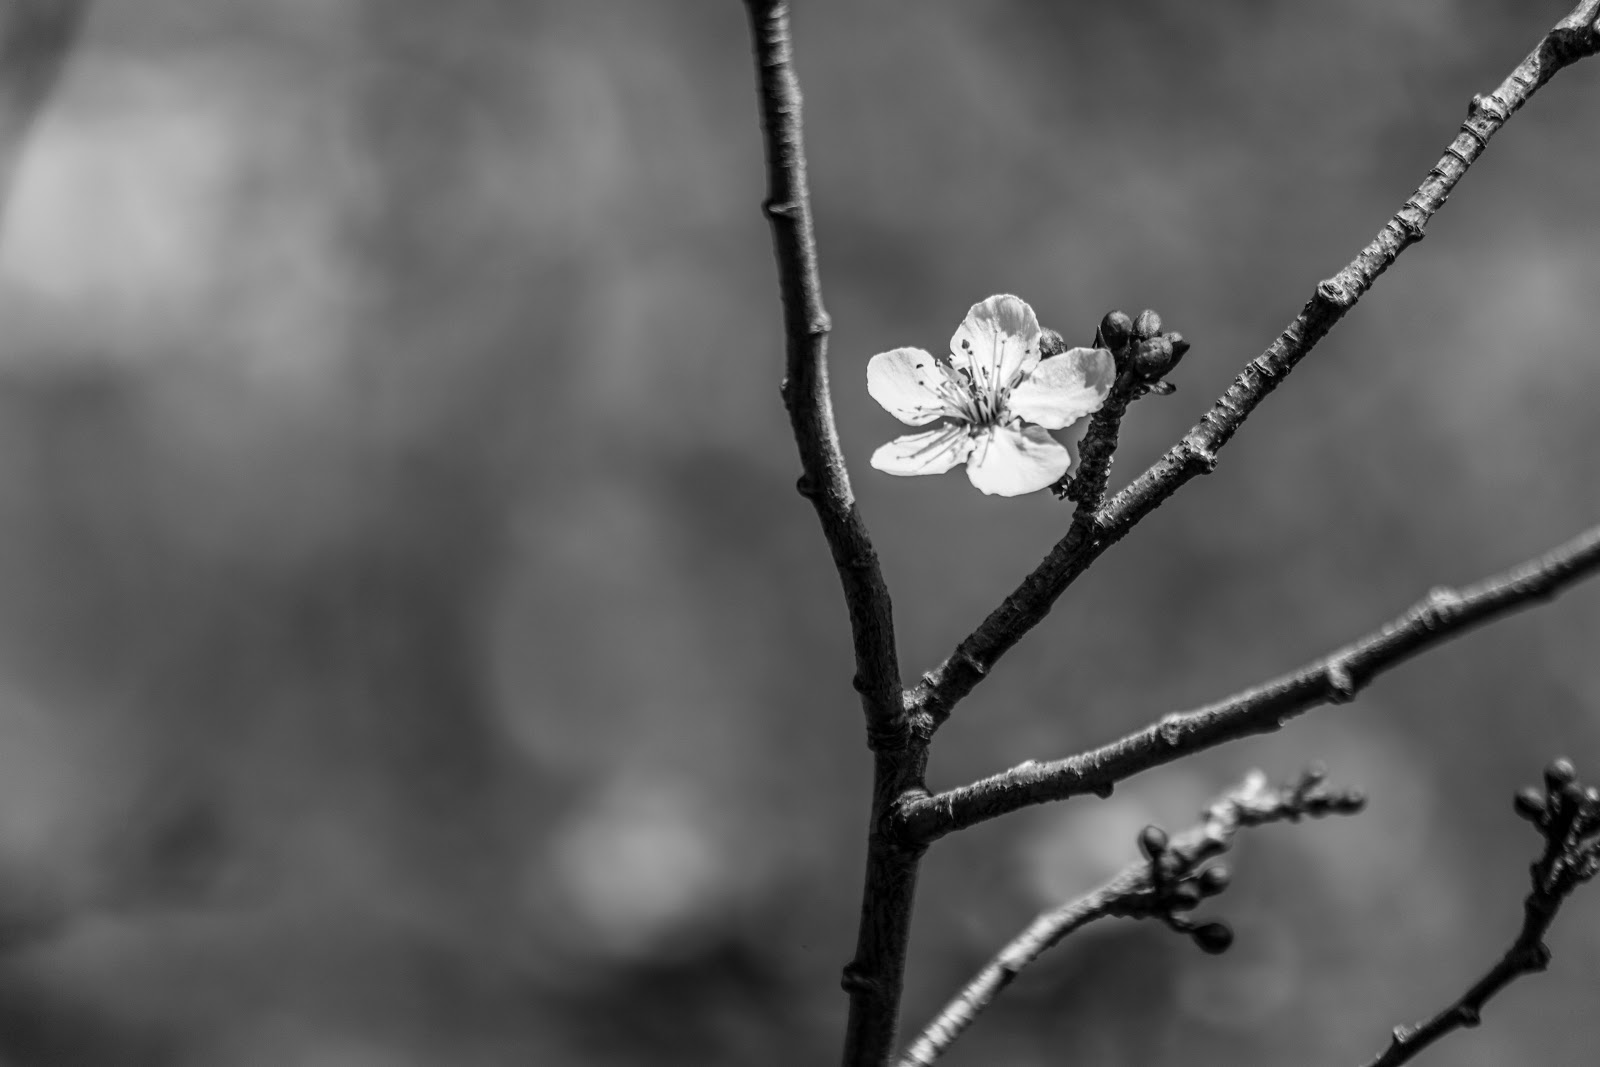 An Abstract Type Photo Of A Lonely Cherry Blossom Surrounded By Few Buds Sometimes For To Look Good Simplicity Is The Key